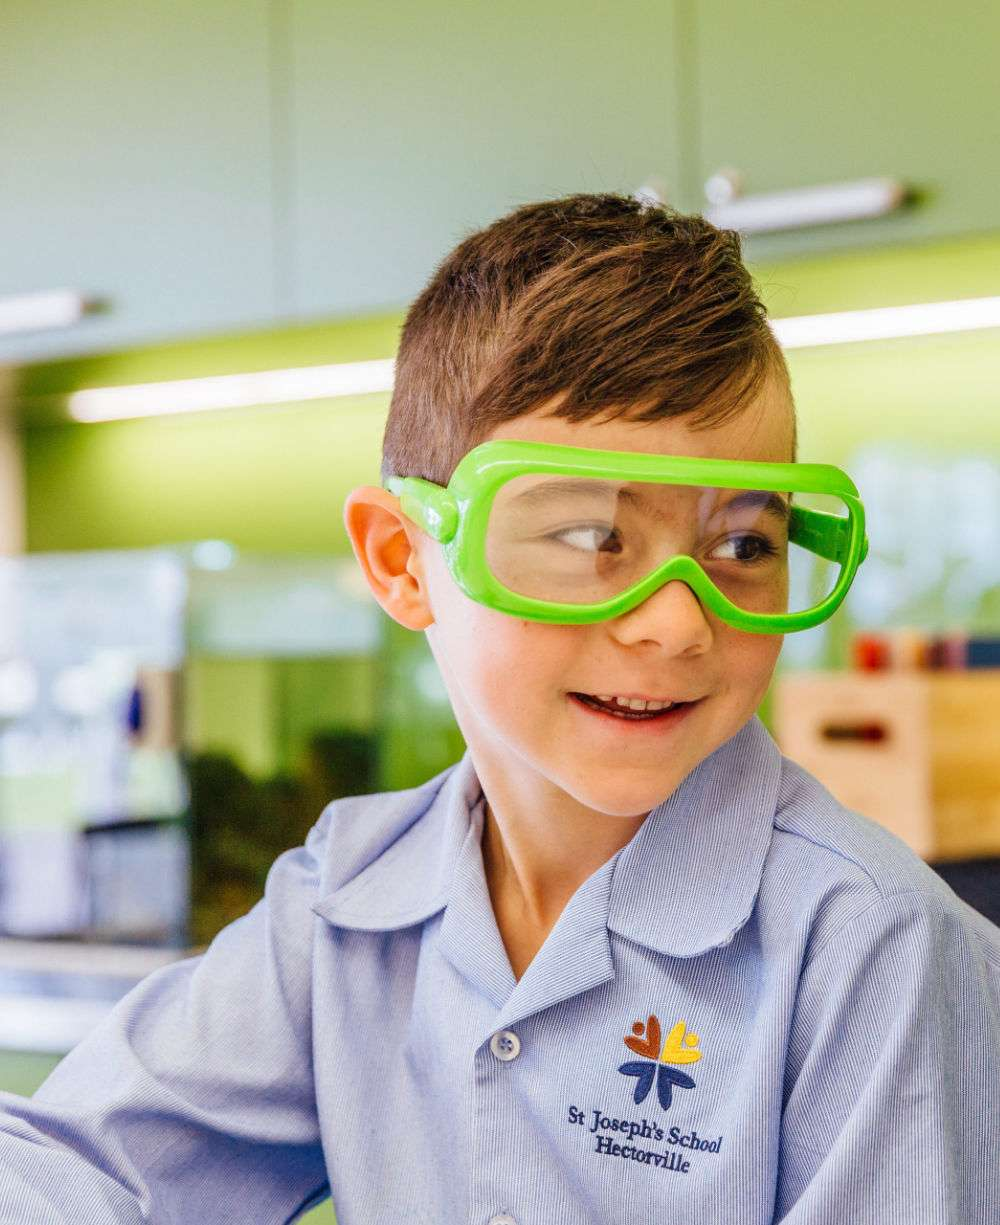 Science student with green glasses